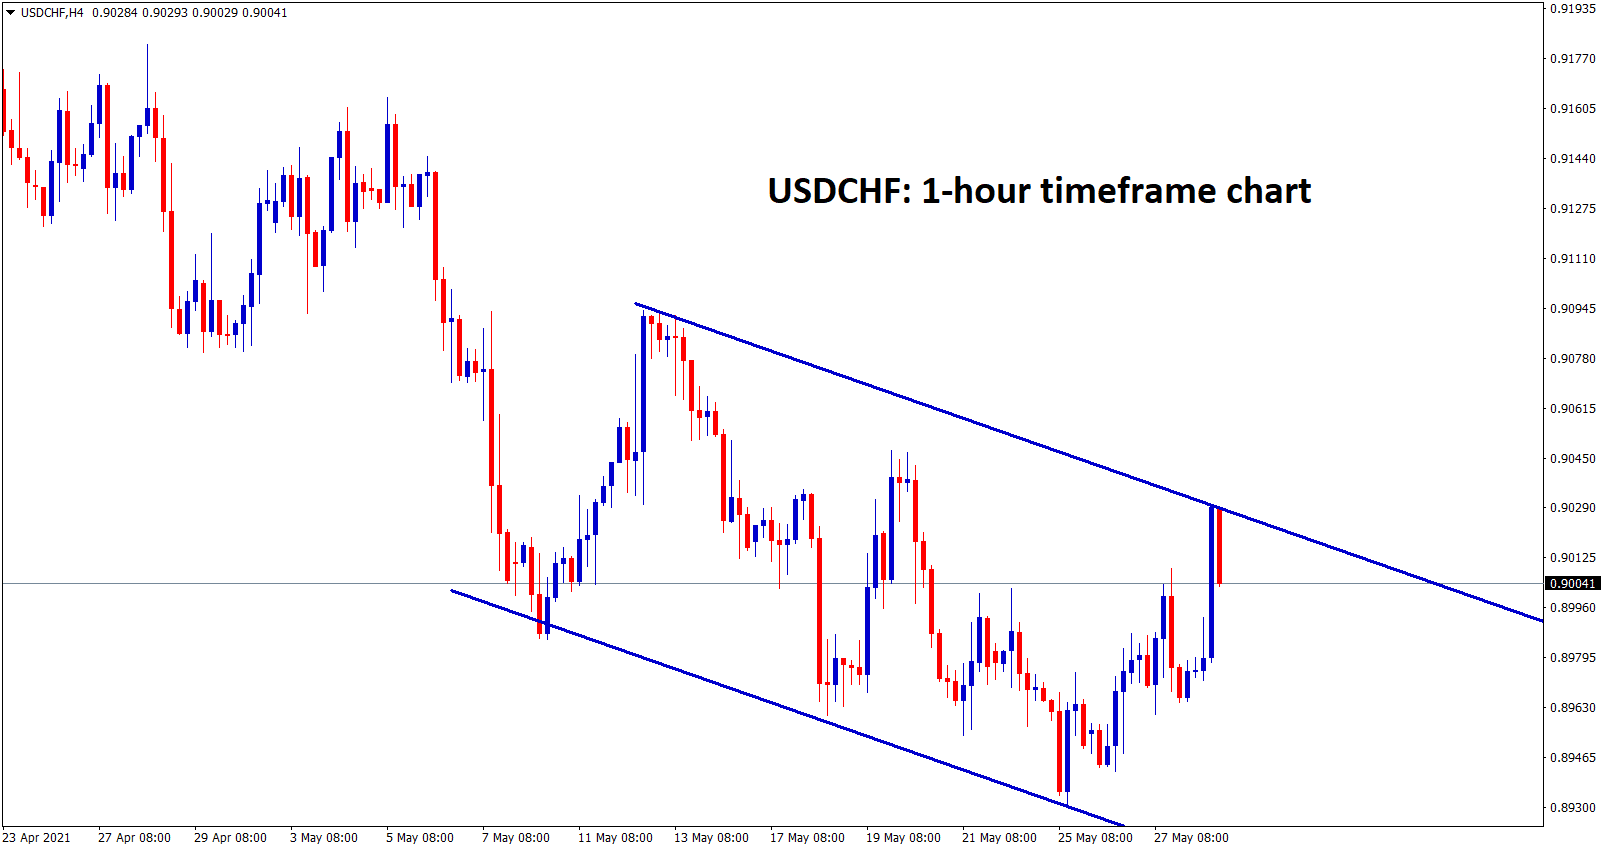 USDCHF is moving in a descending channel range in 4hour chart